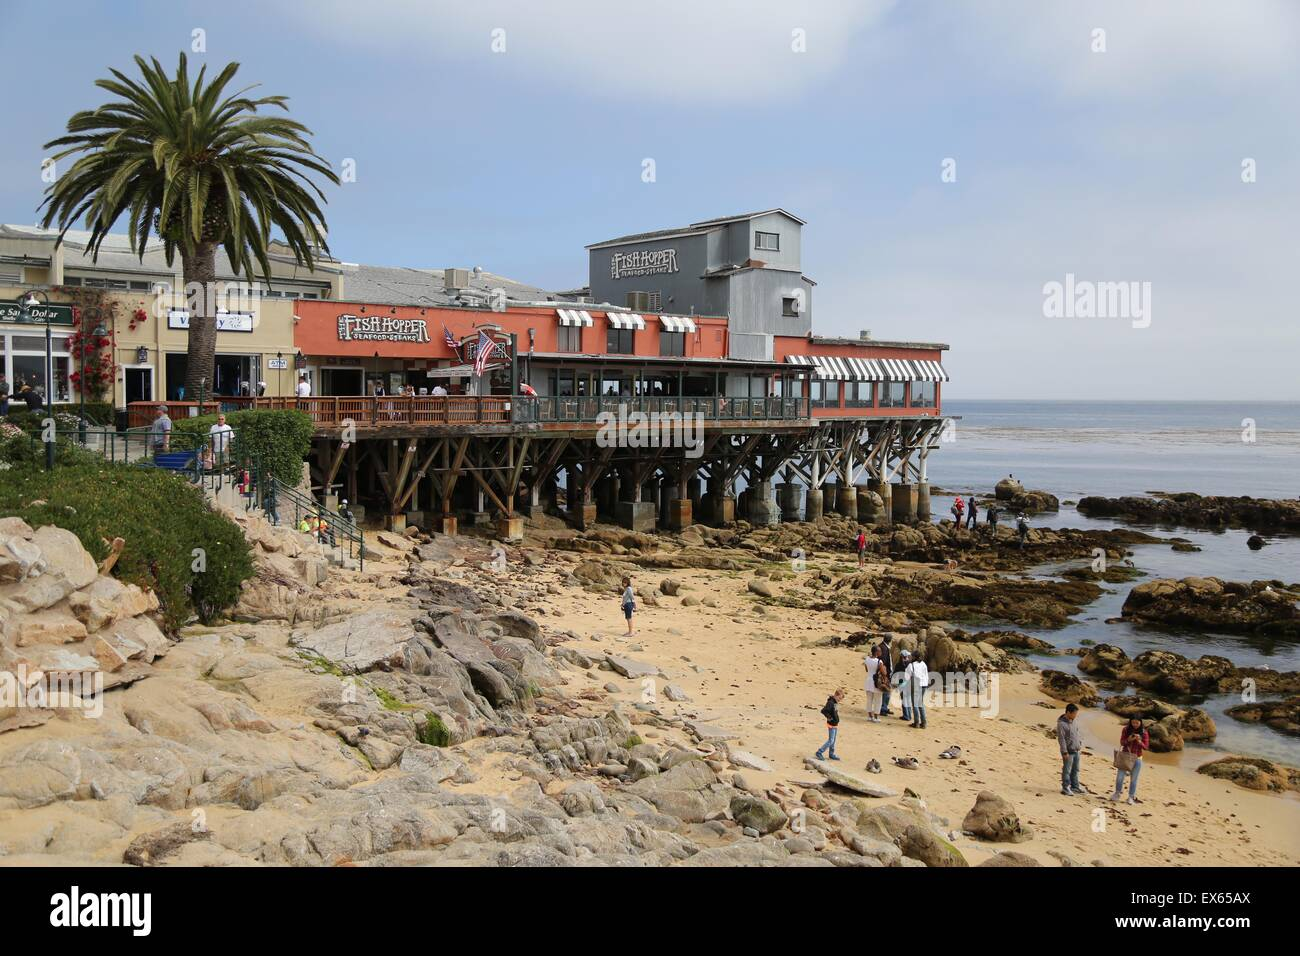 Beach Side Cafes Restaurants And Shops Off Cannery Row In